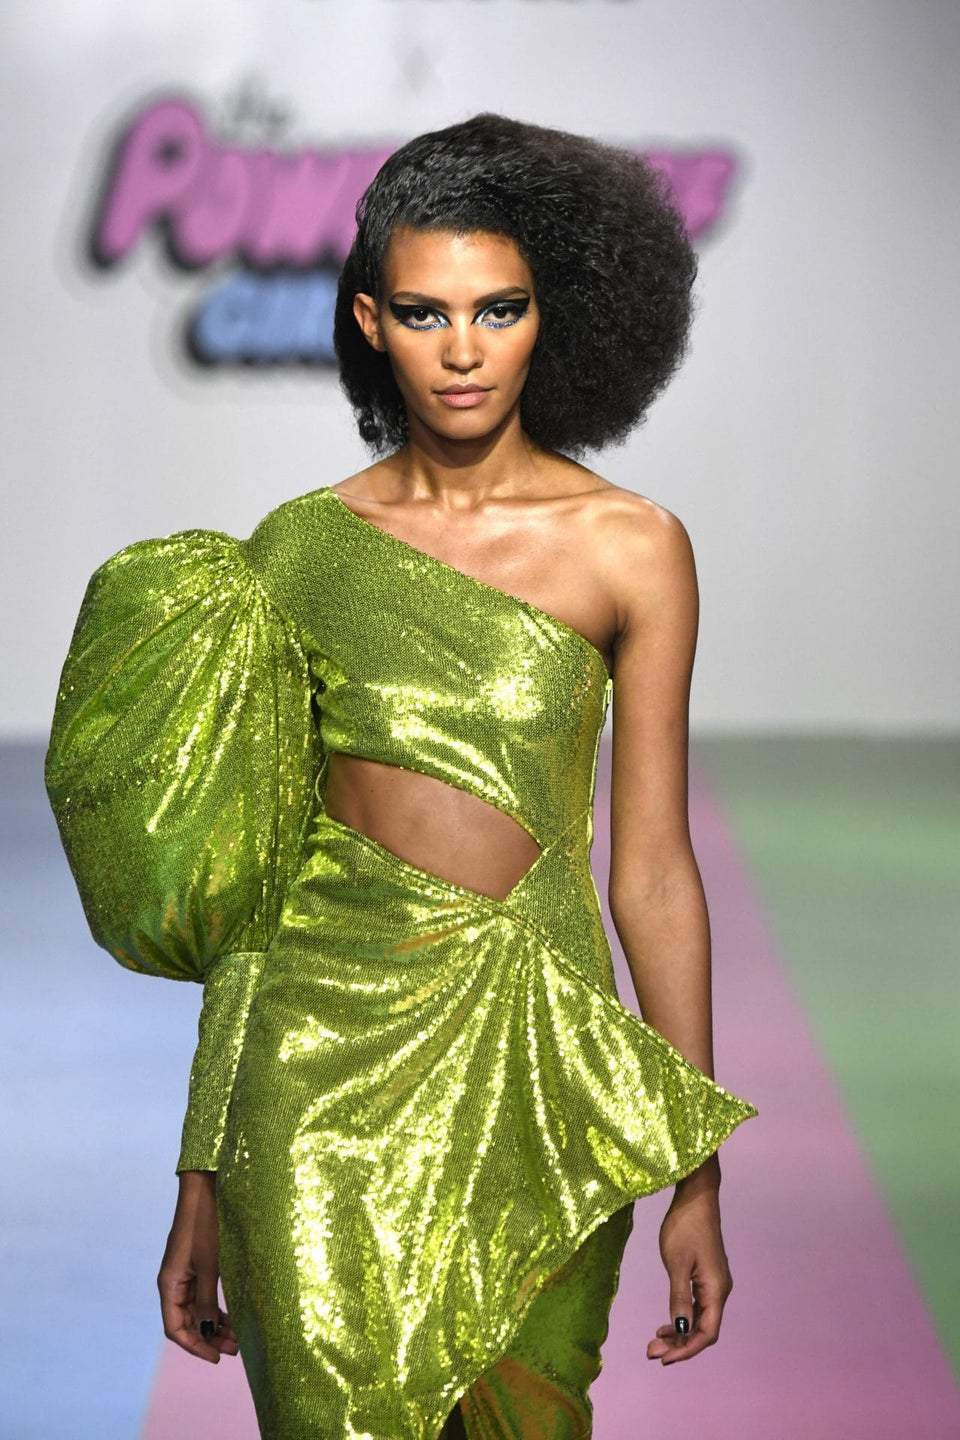 Fashion Turns To TV With Christian Cowan's 'Powerpuff Girls' Collection